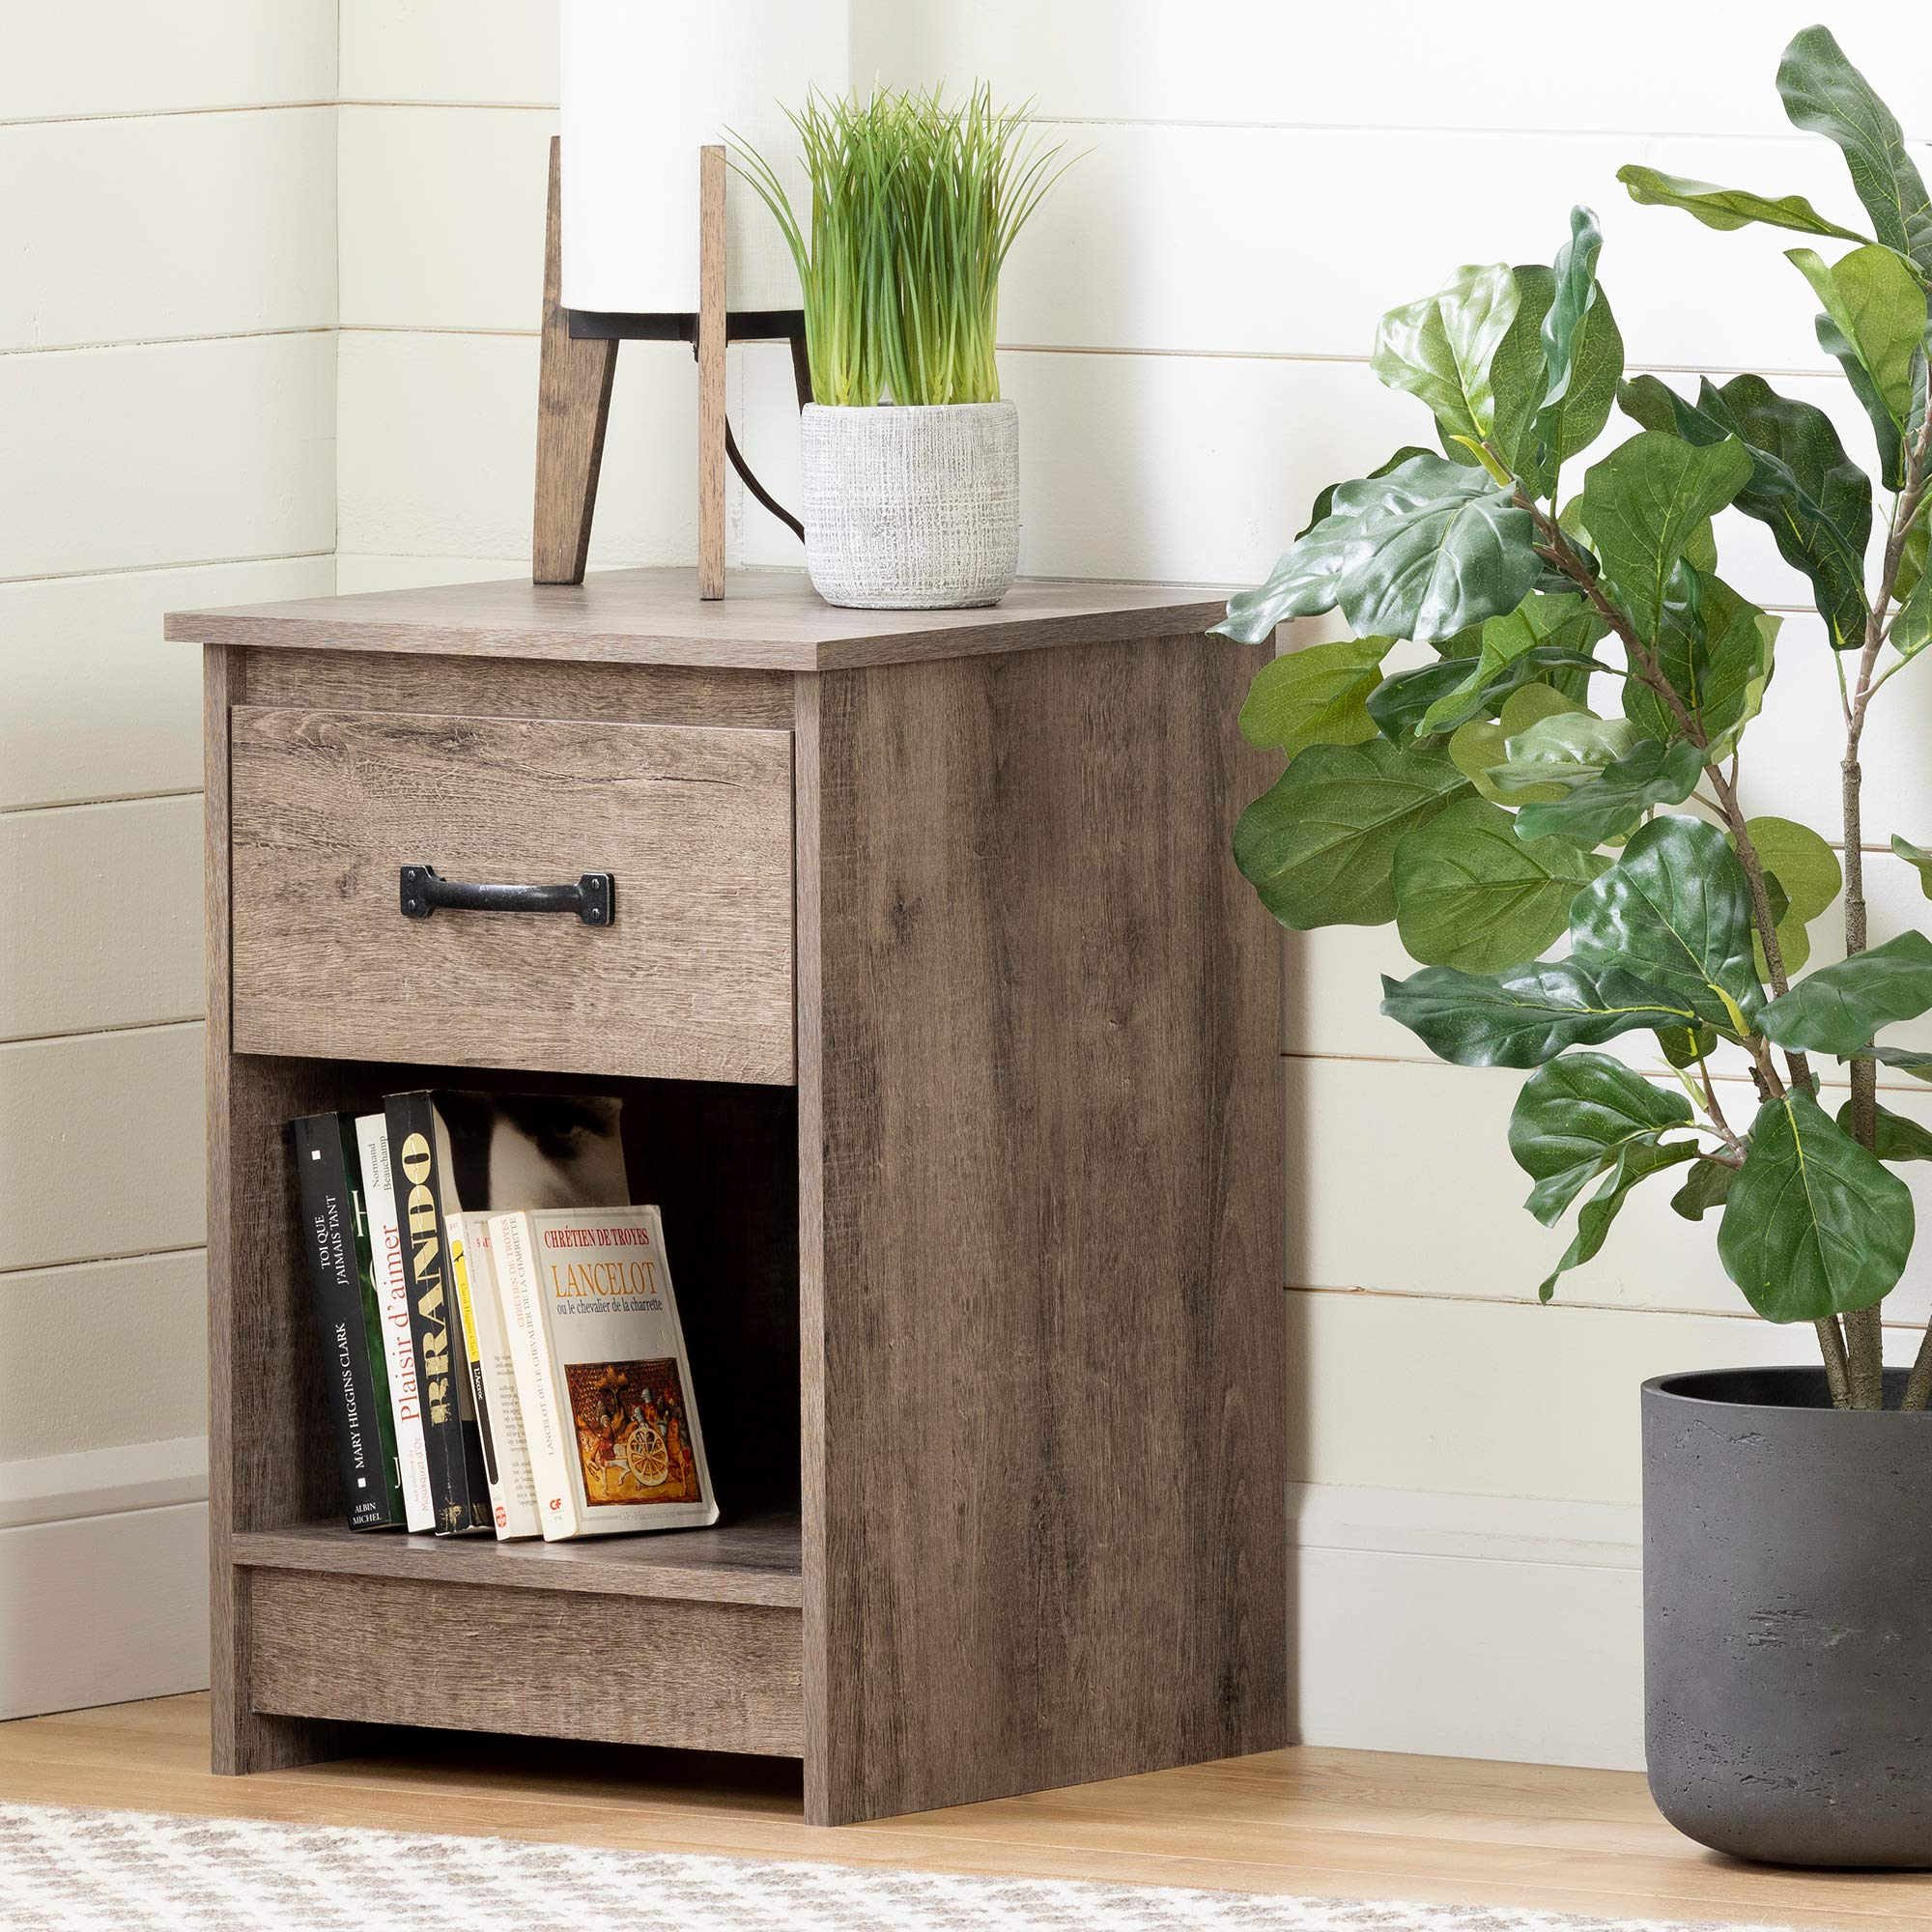 South Shore Tassio 1-Drawer Nightstand-Weathered Oak by South Shore